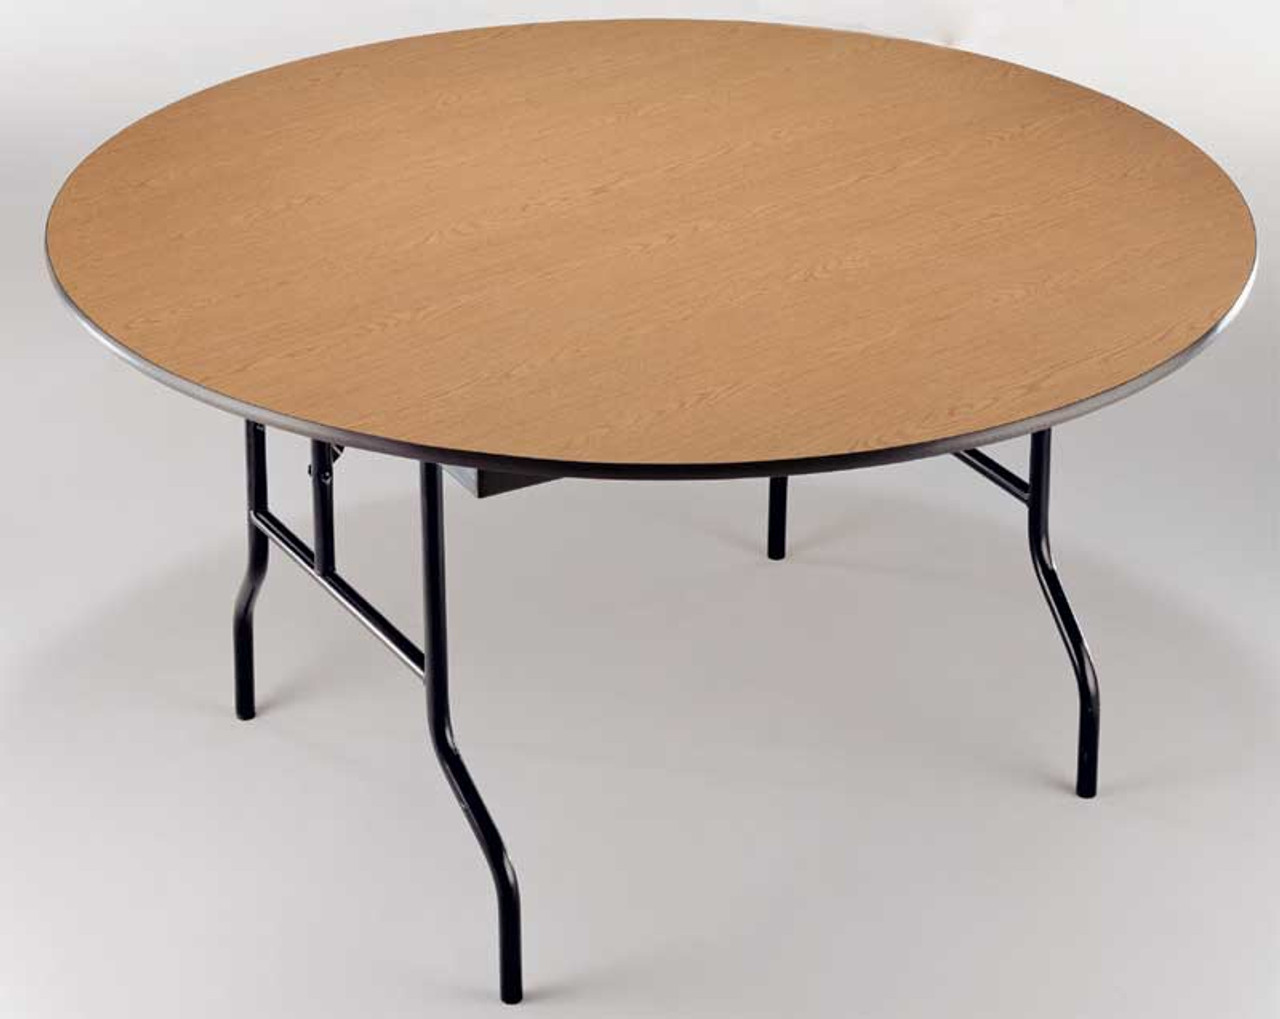 Midwest R48e Plywood Core 48 Inch Round Folding Table L Affordable